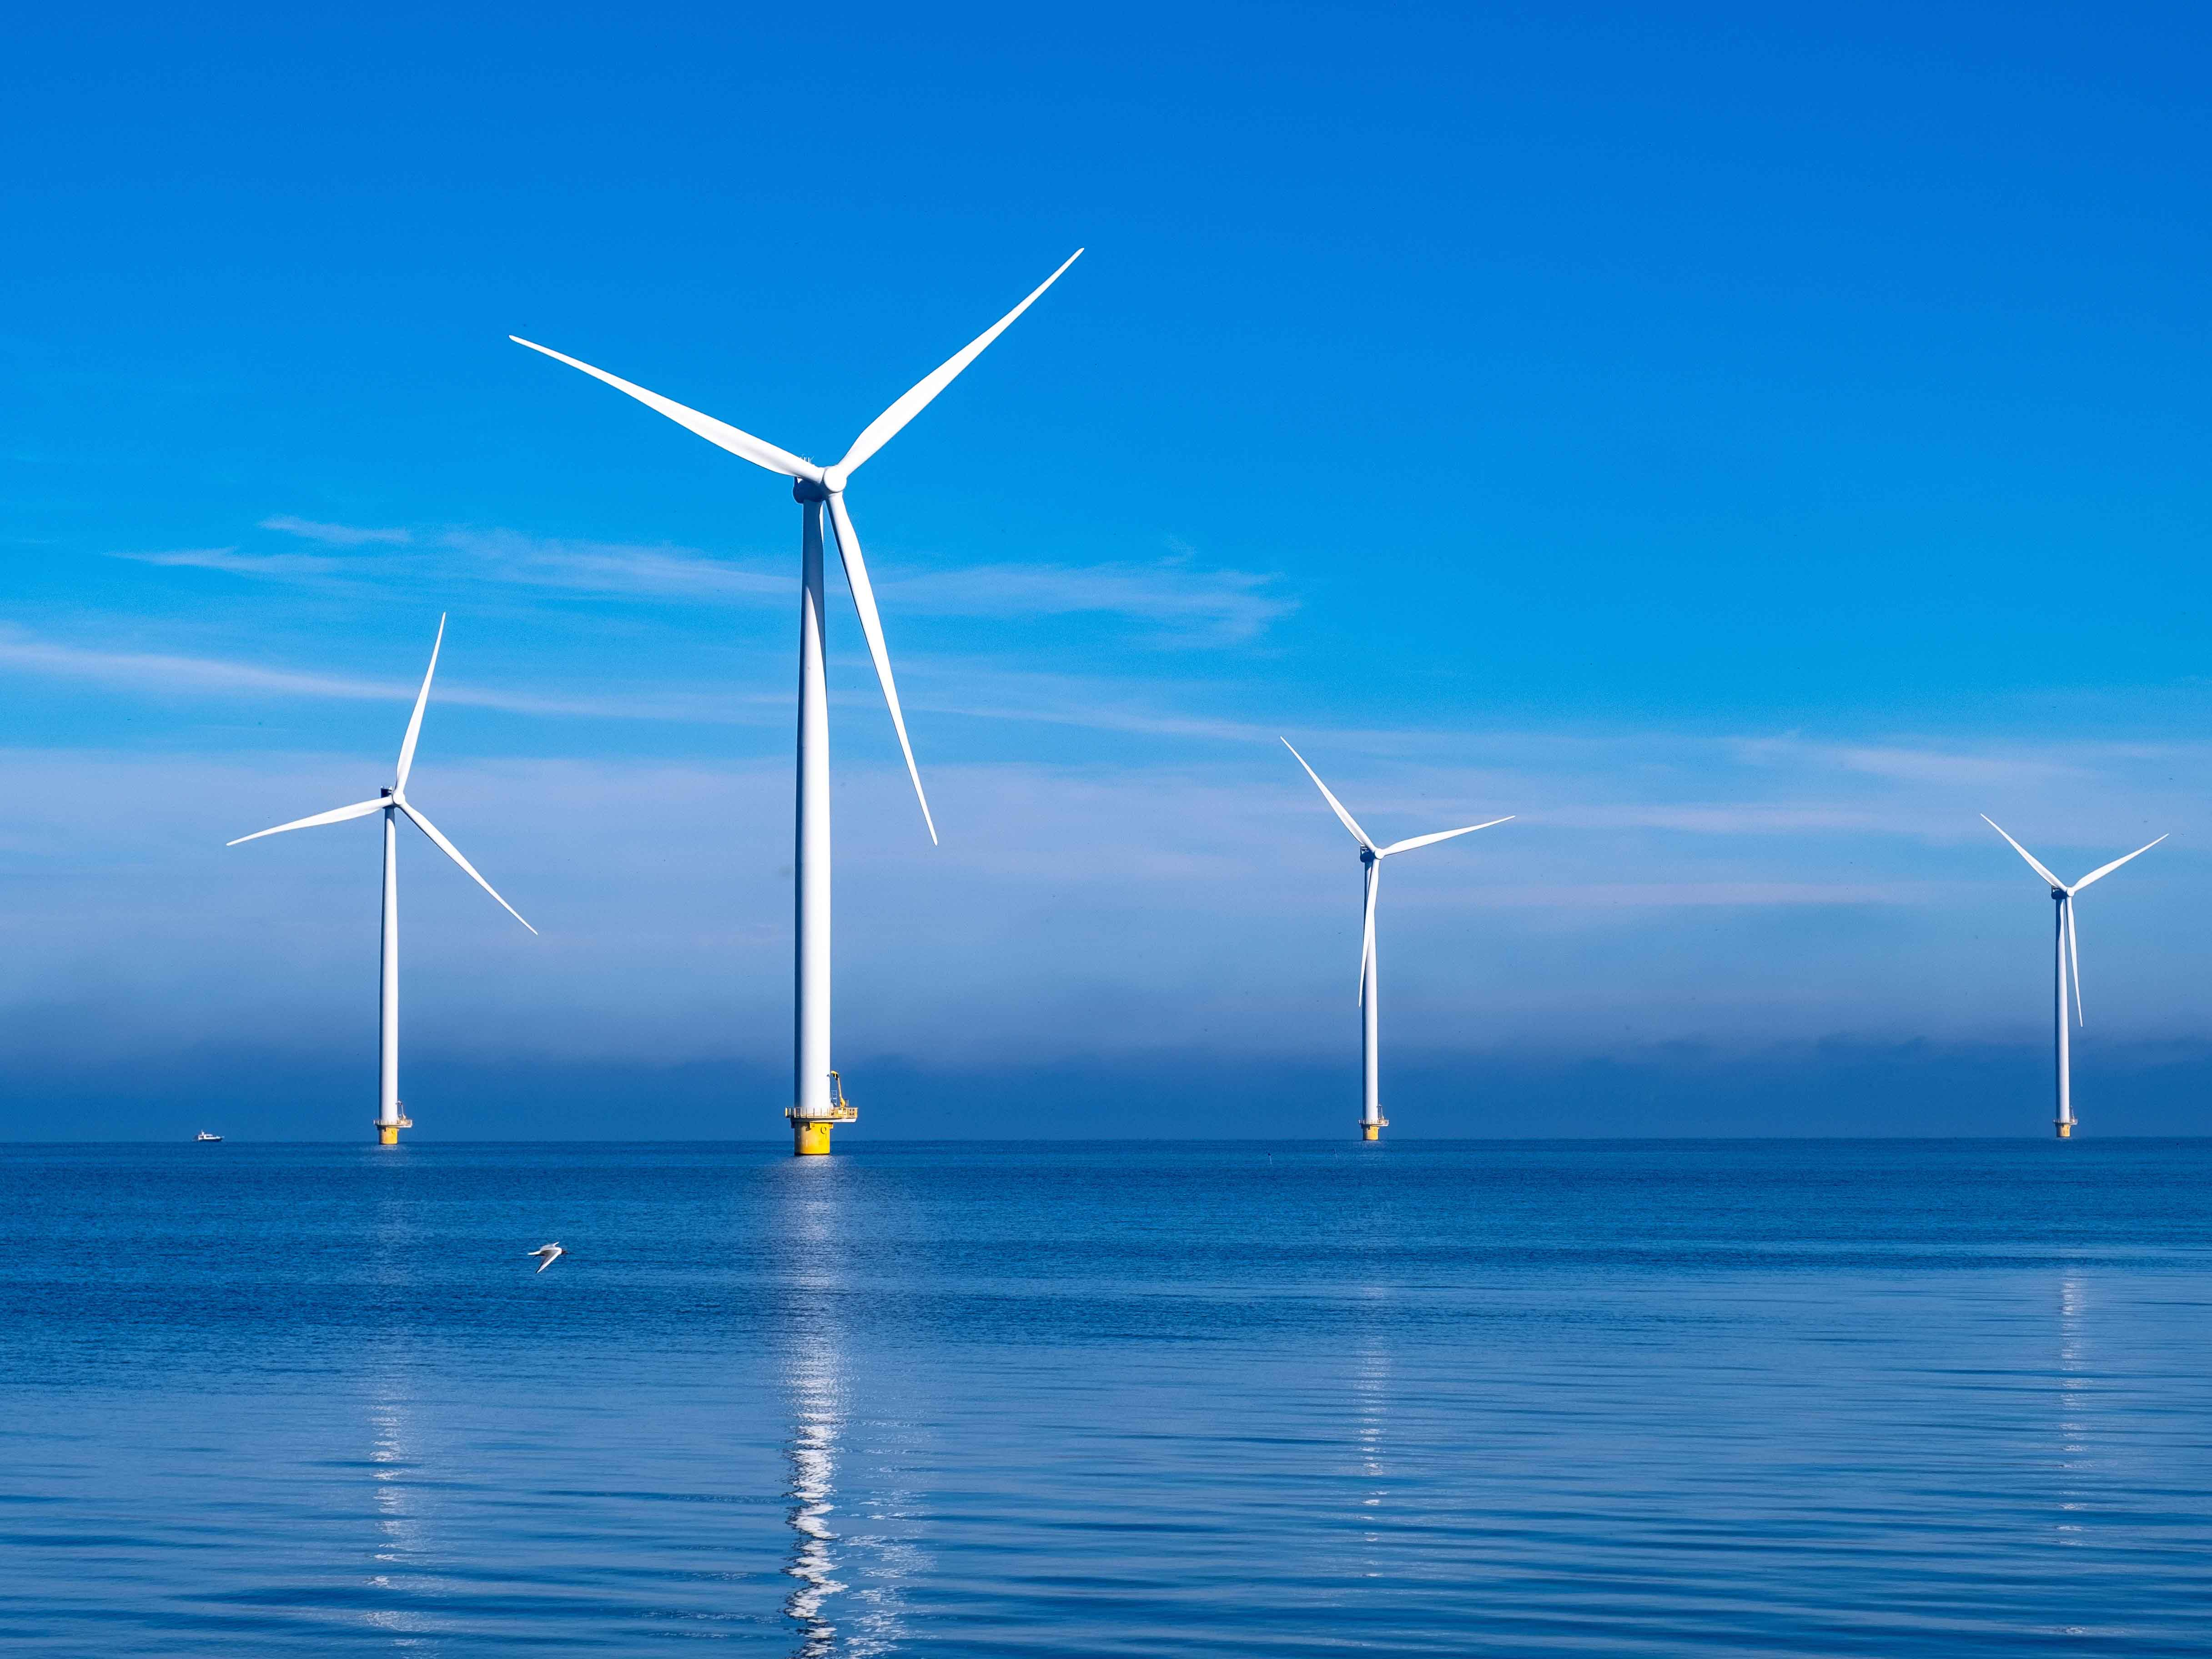 New regime to unlock investment in Australia's offshore energy projects